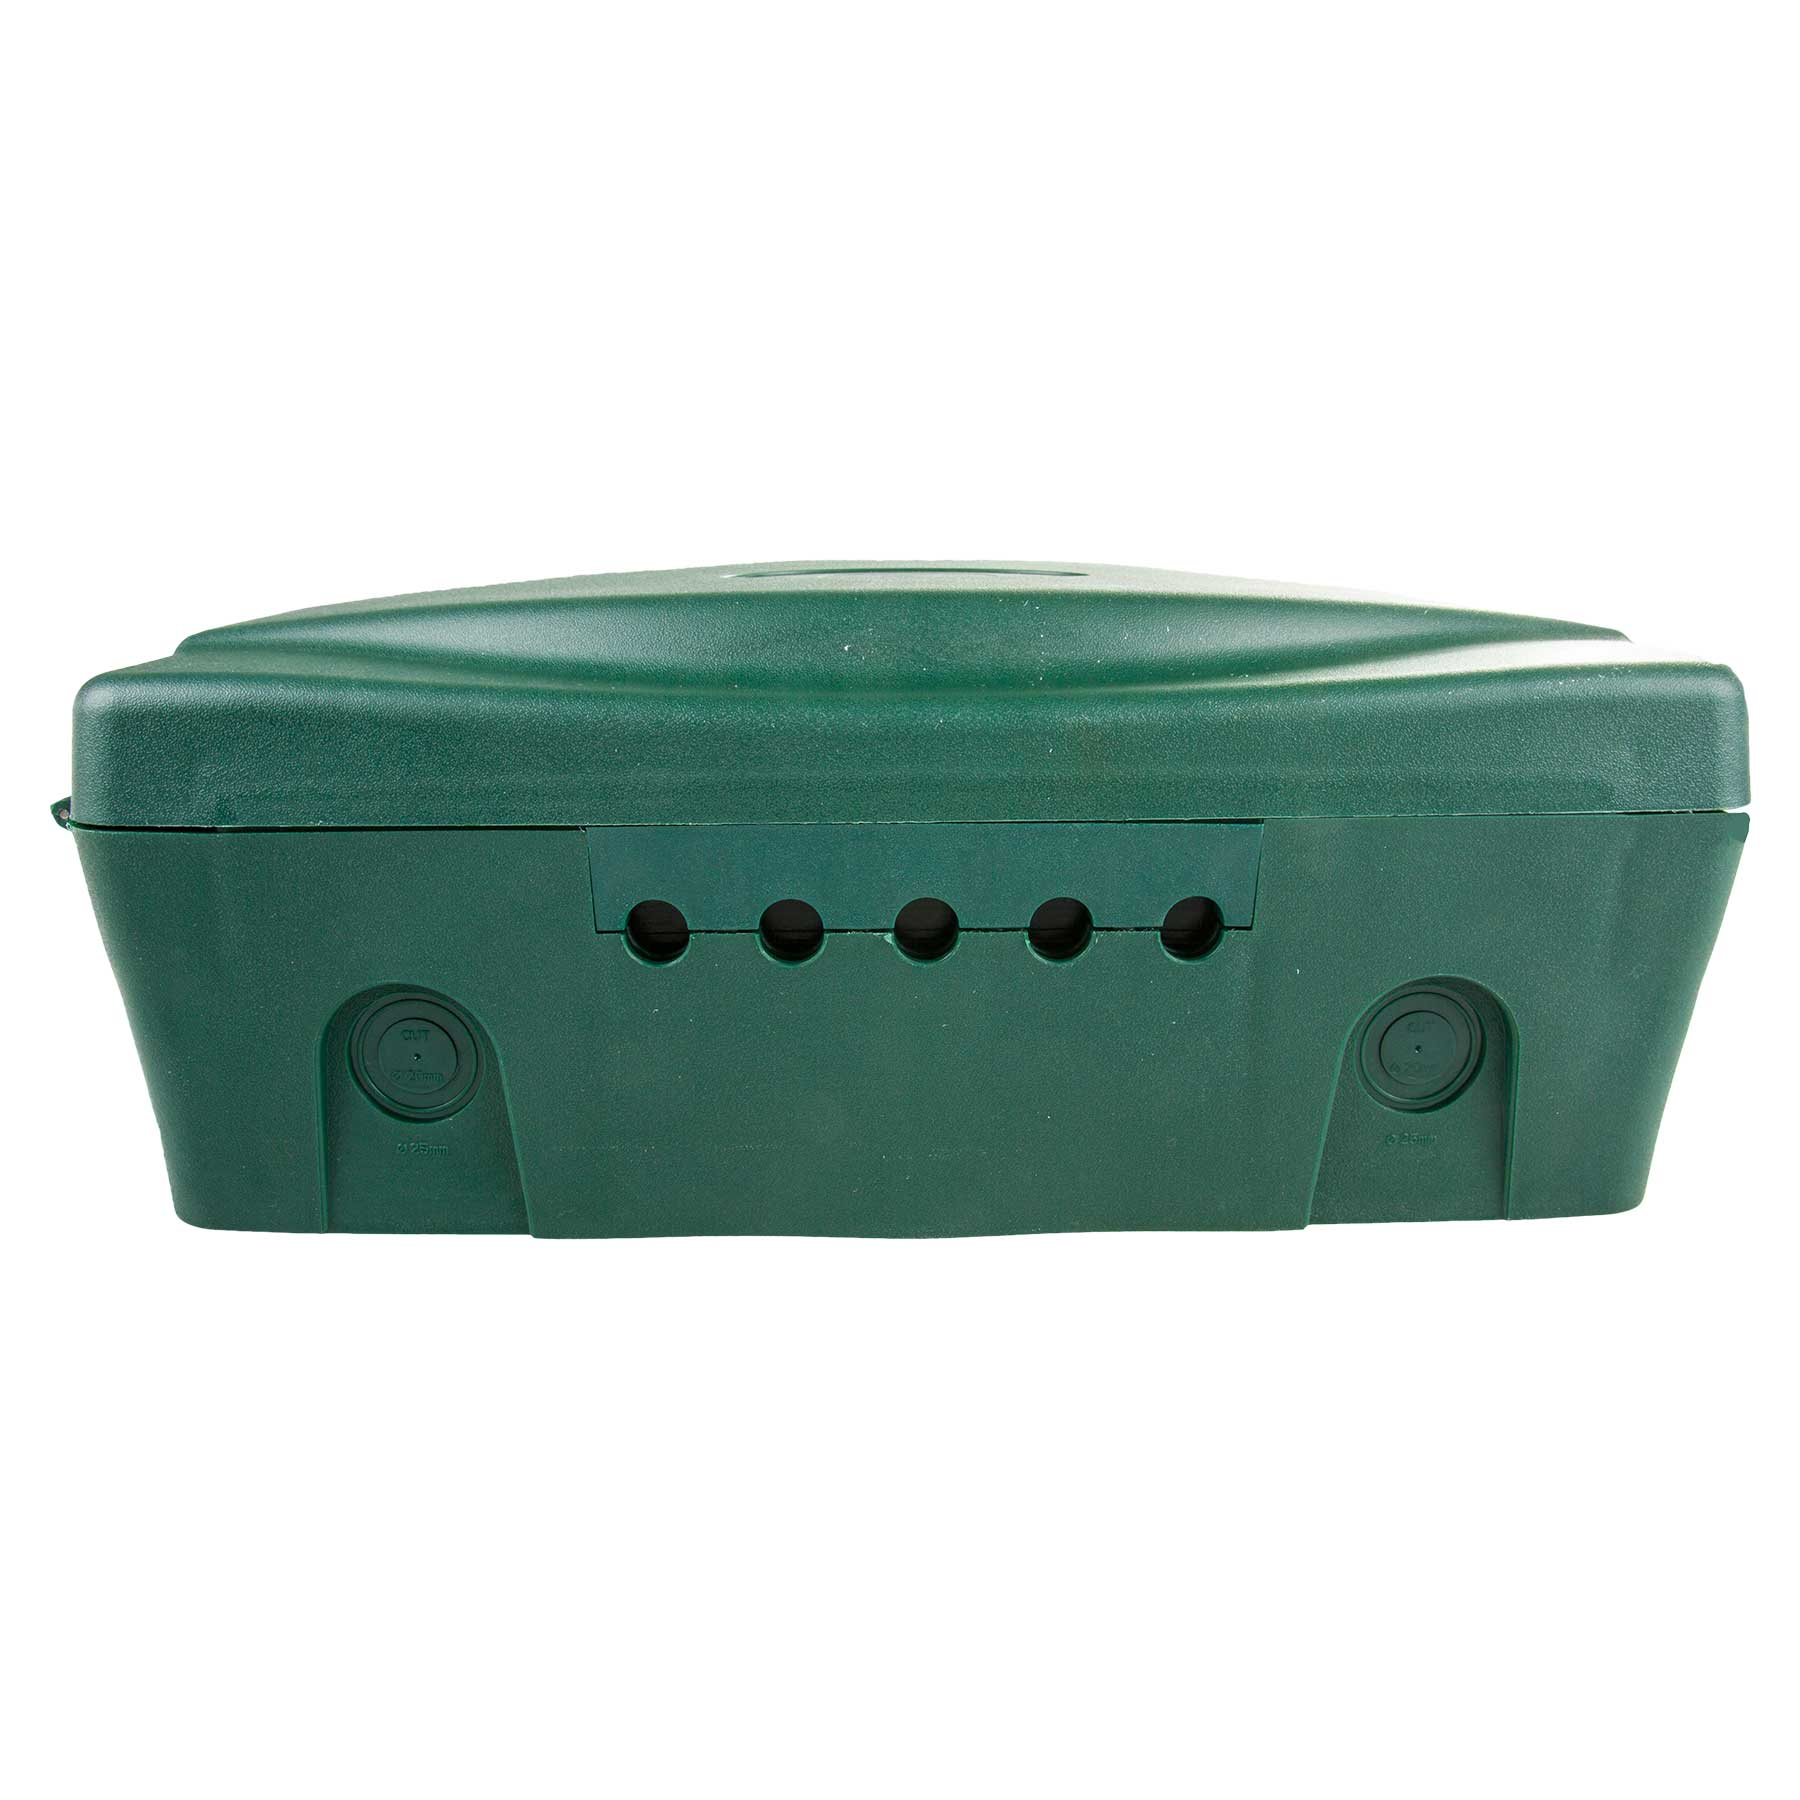 Masterplug green weatherproof box for outdoor electrical power connections masterplug green for Exterior electrical outlet box